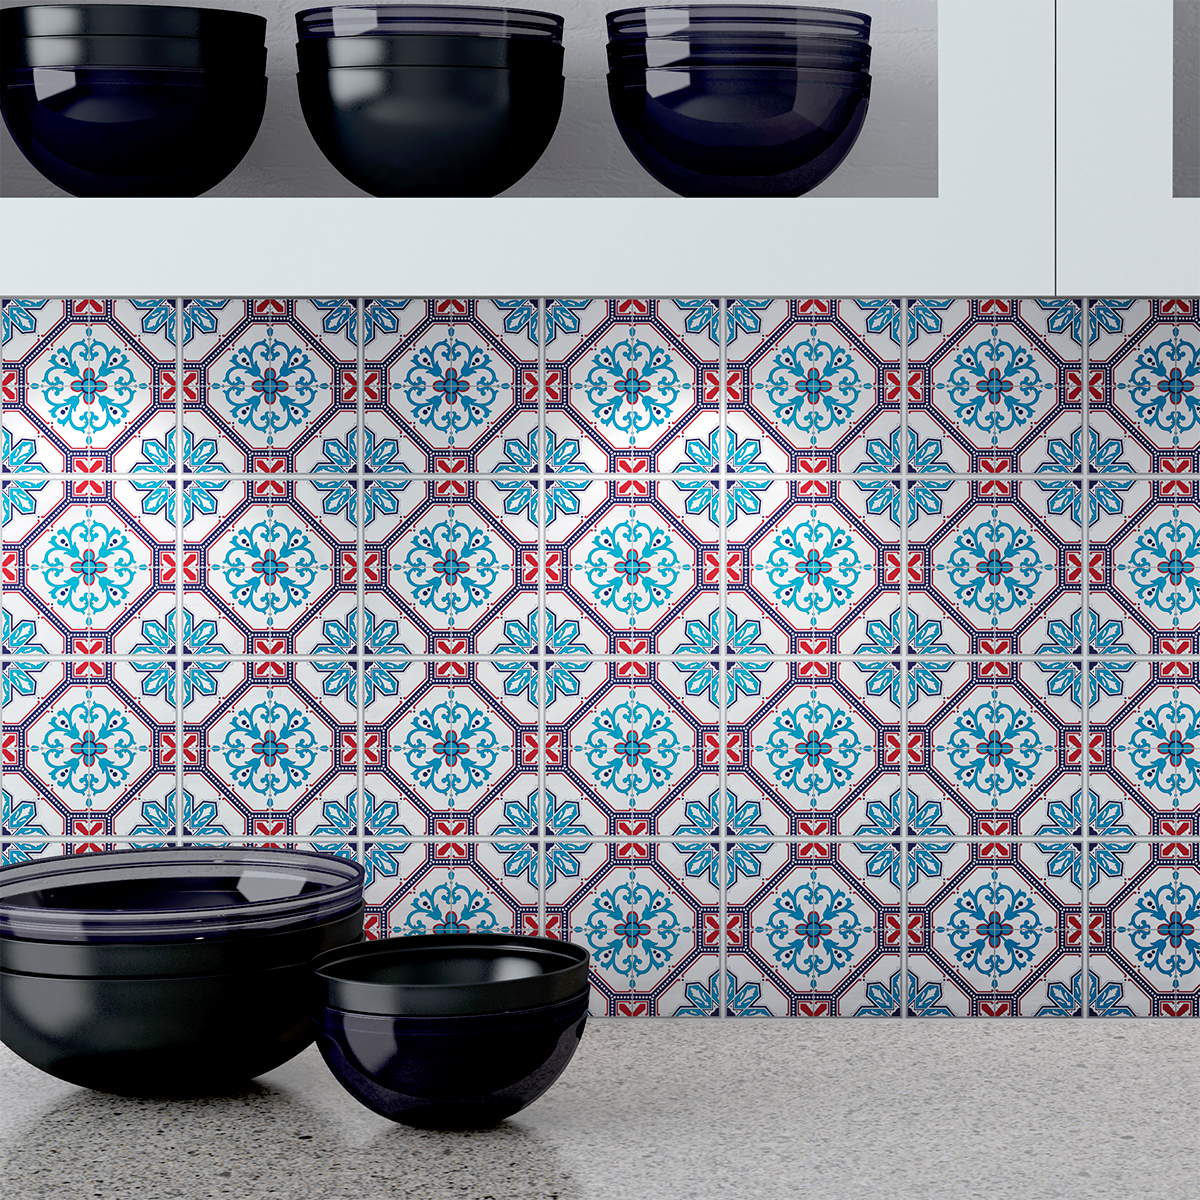 24 stickers carreaux de ciment azulejos calantha cuisine for Stickers carrelage cuisine 15x15